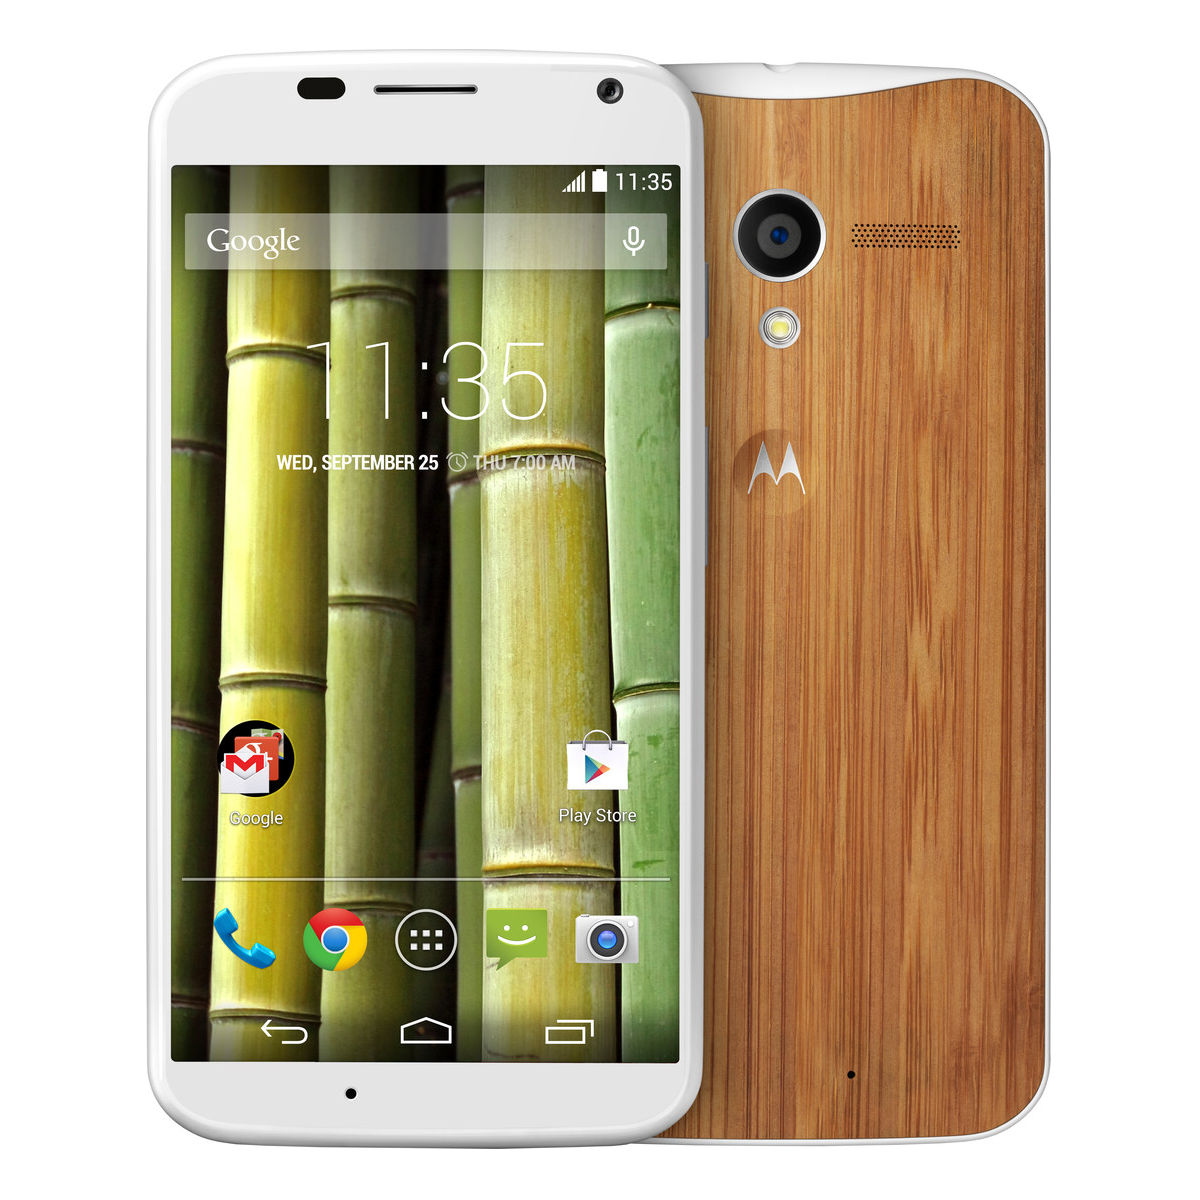 Motorola Moto X 16GB for ATT Wireless Smartphone in White